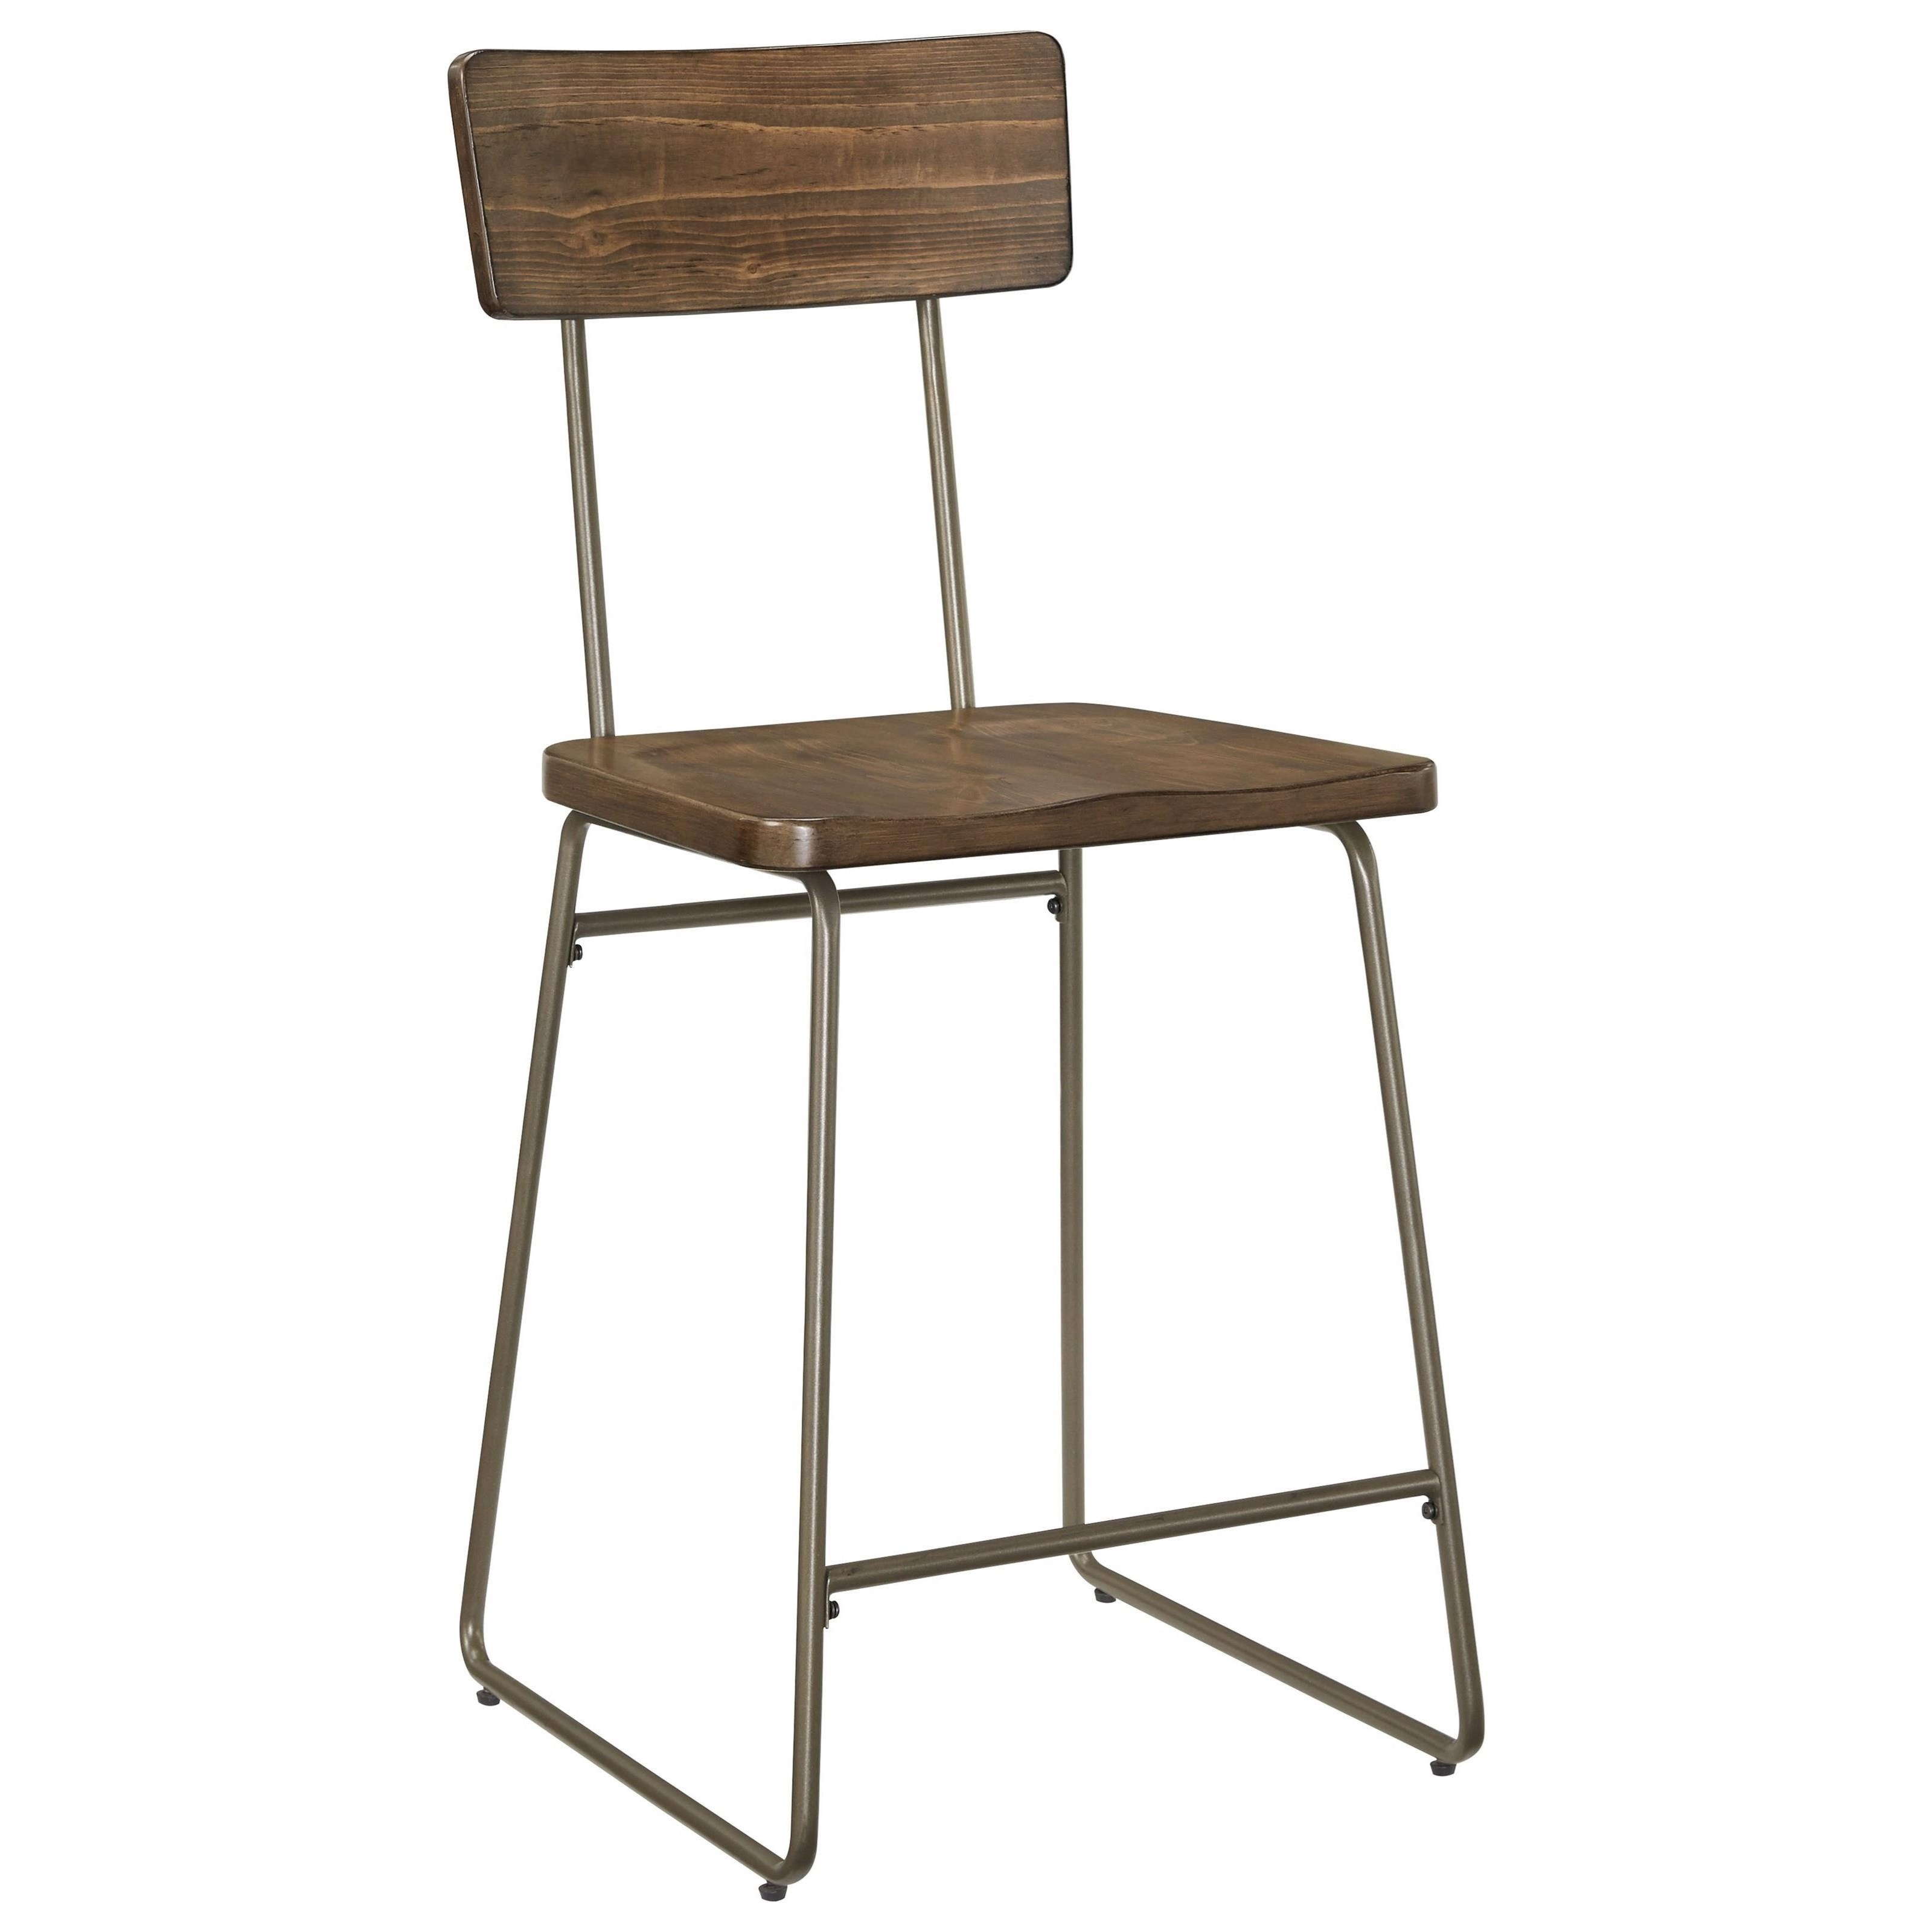 Standard furniture oslo industrial counter height stool olinde 39 s furniture bar stool - Standard counter height stool ...